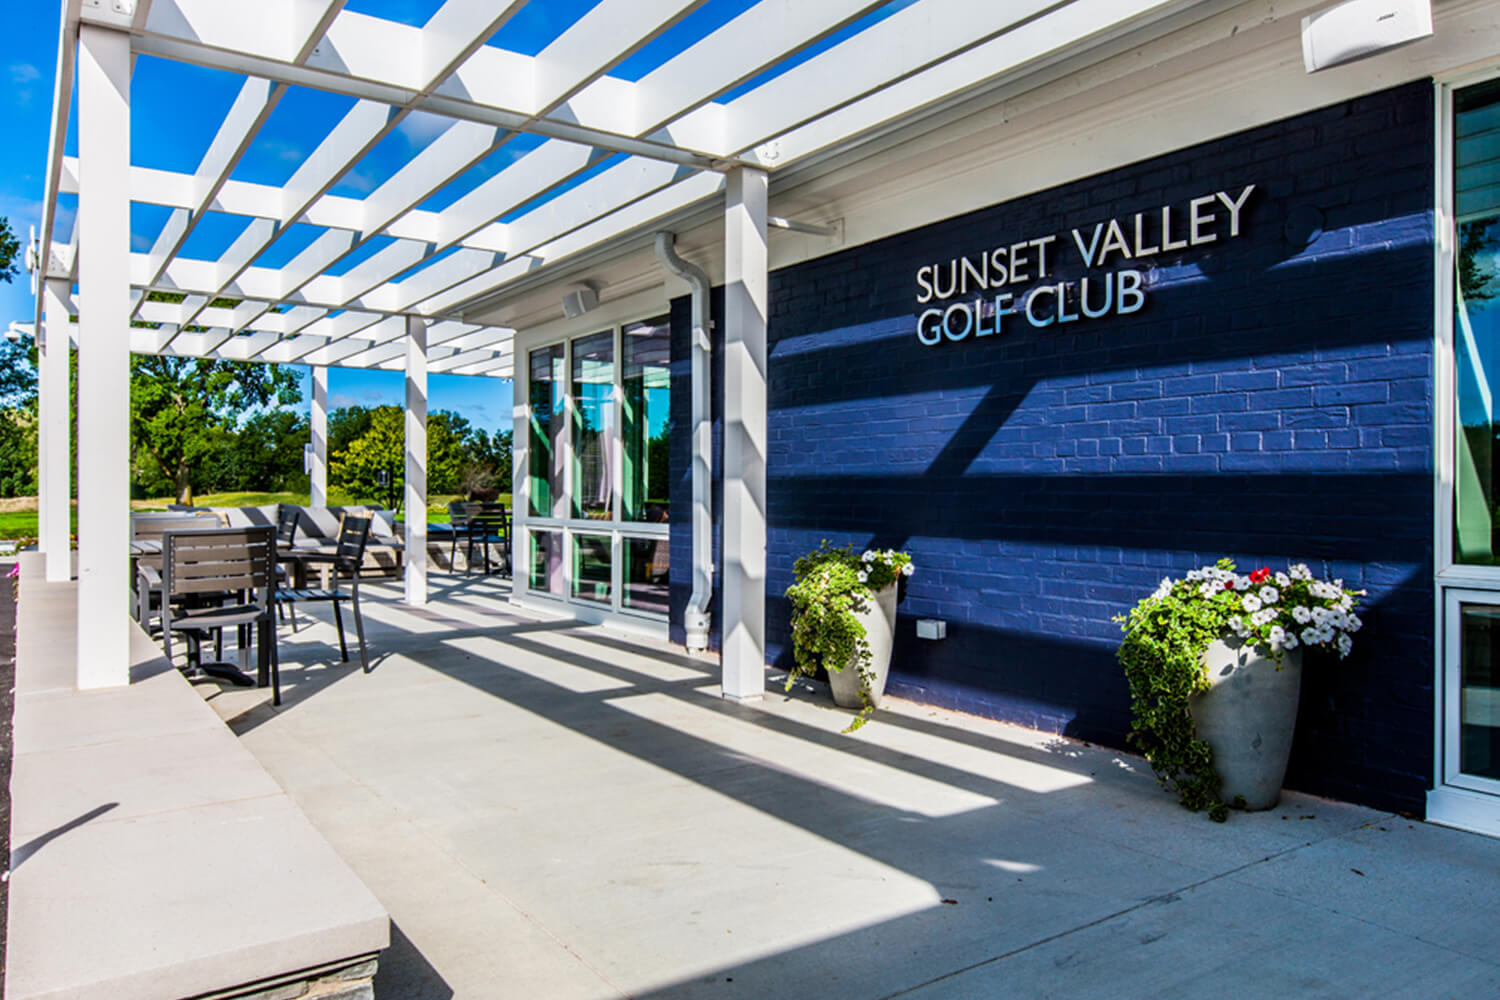 Park District of Highland Park – Sunset Valley Golf Clubhouse exterior sign